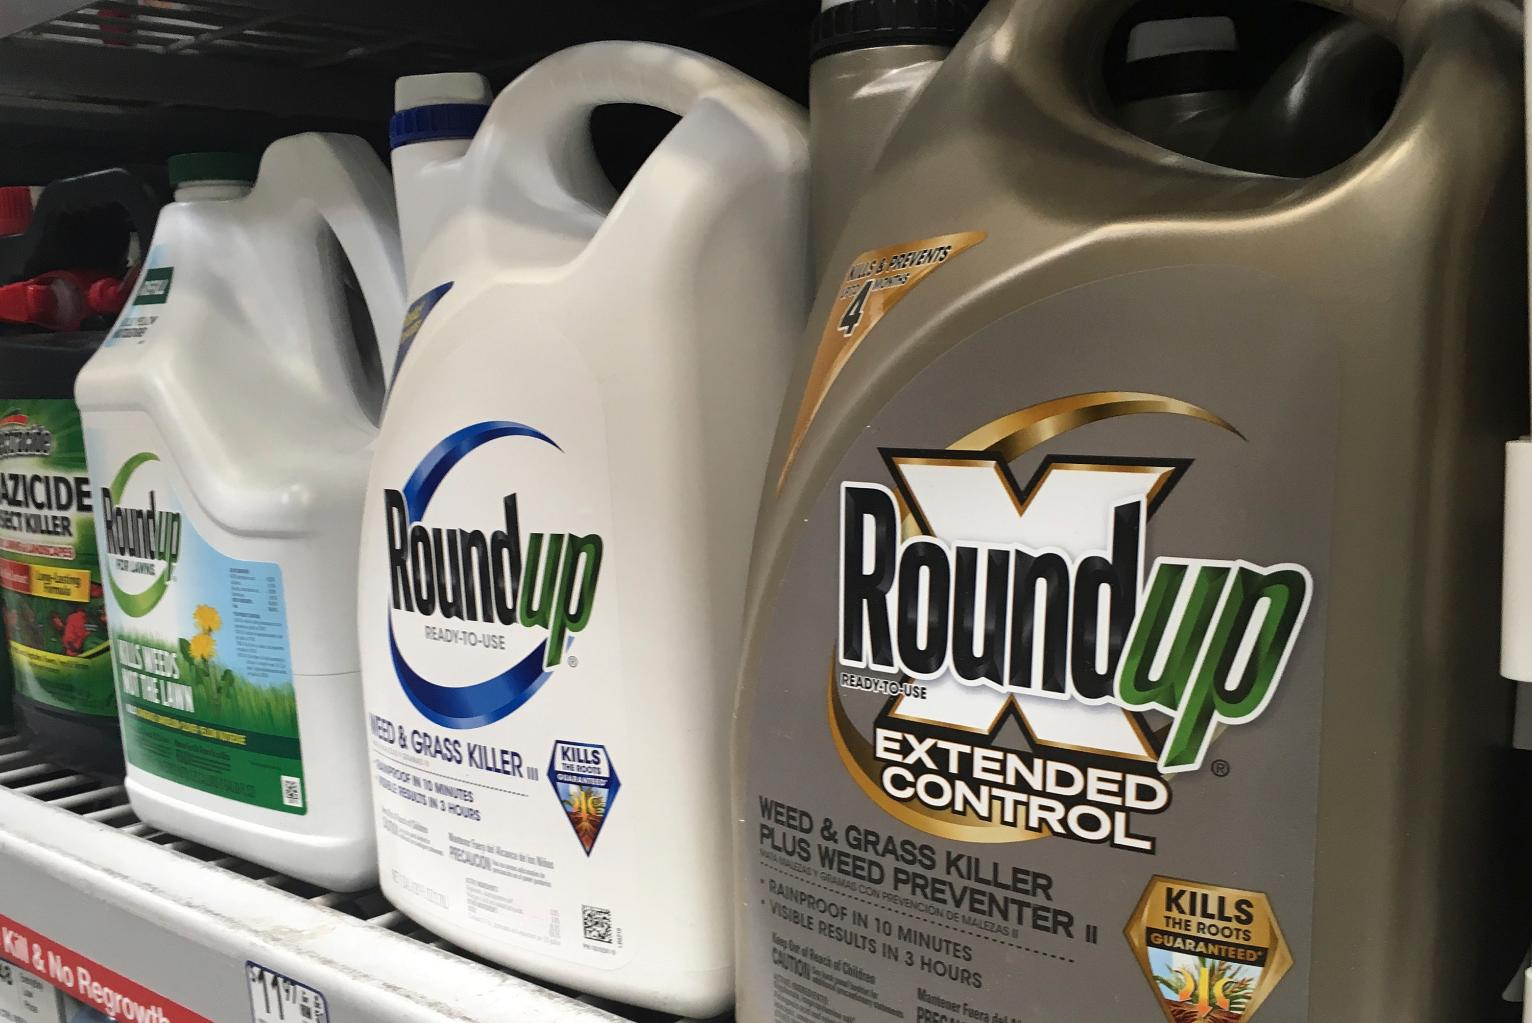 Juries Link Roundup Weed Killer to Cancer Risk | National News | US News